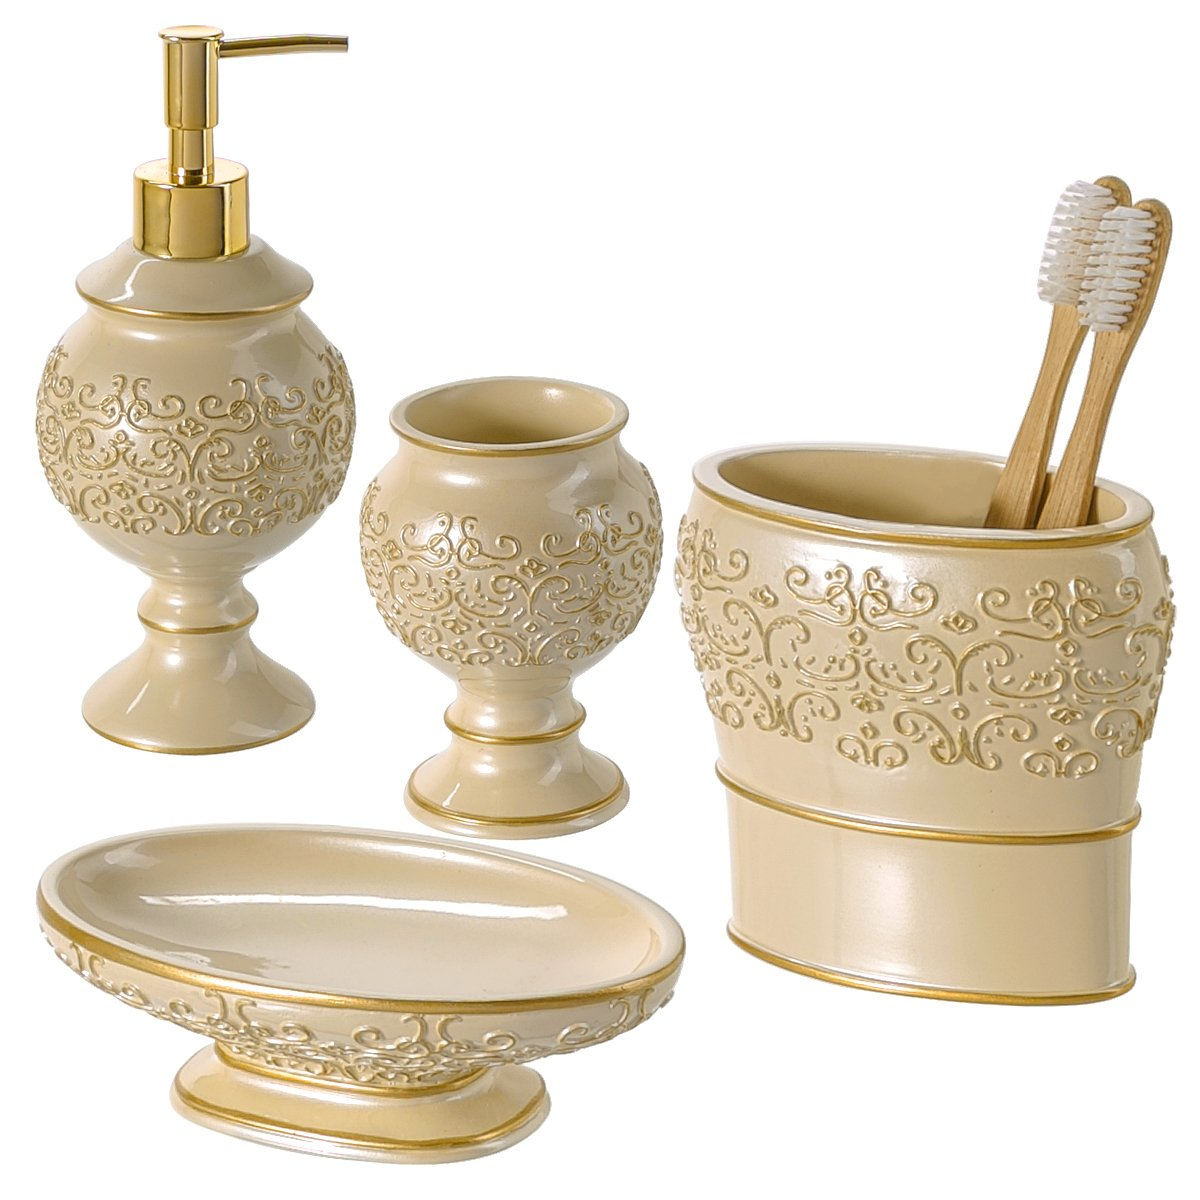 Shannon Bathroom Accessories Set, 4-Piece Bathroom Gift Set Features ...